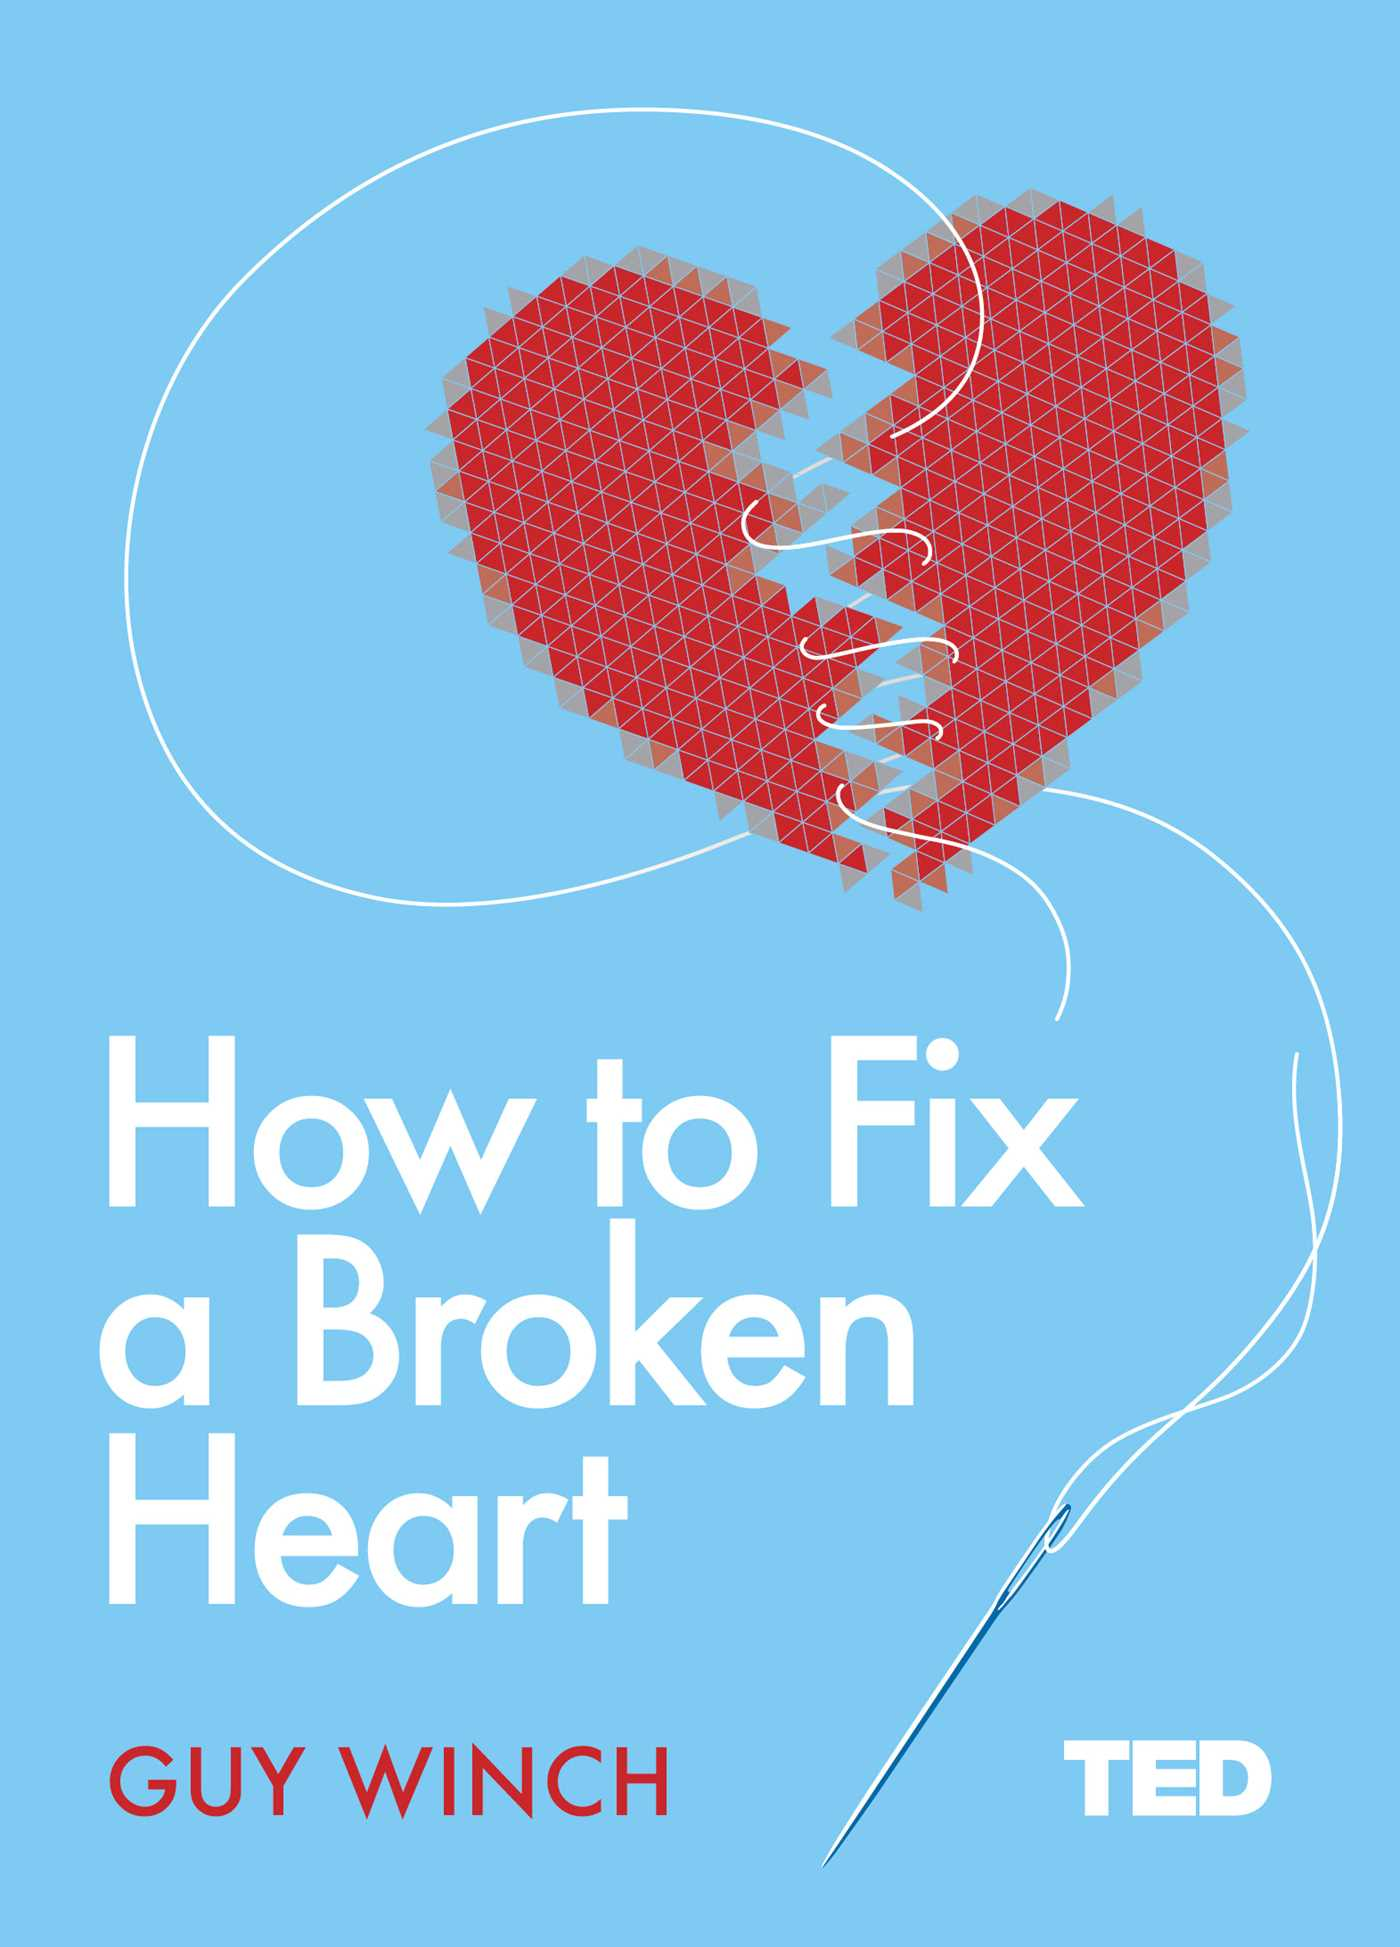 how to repair a broken heart In this getabstract summary, you will learn: why recovering from heartbreak is so  difficult, and which strategies and steps will help mend a broken heart.